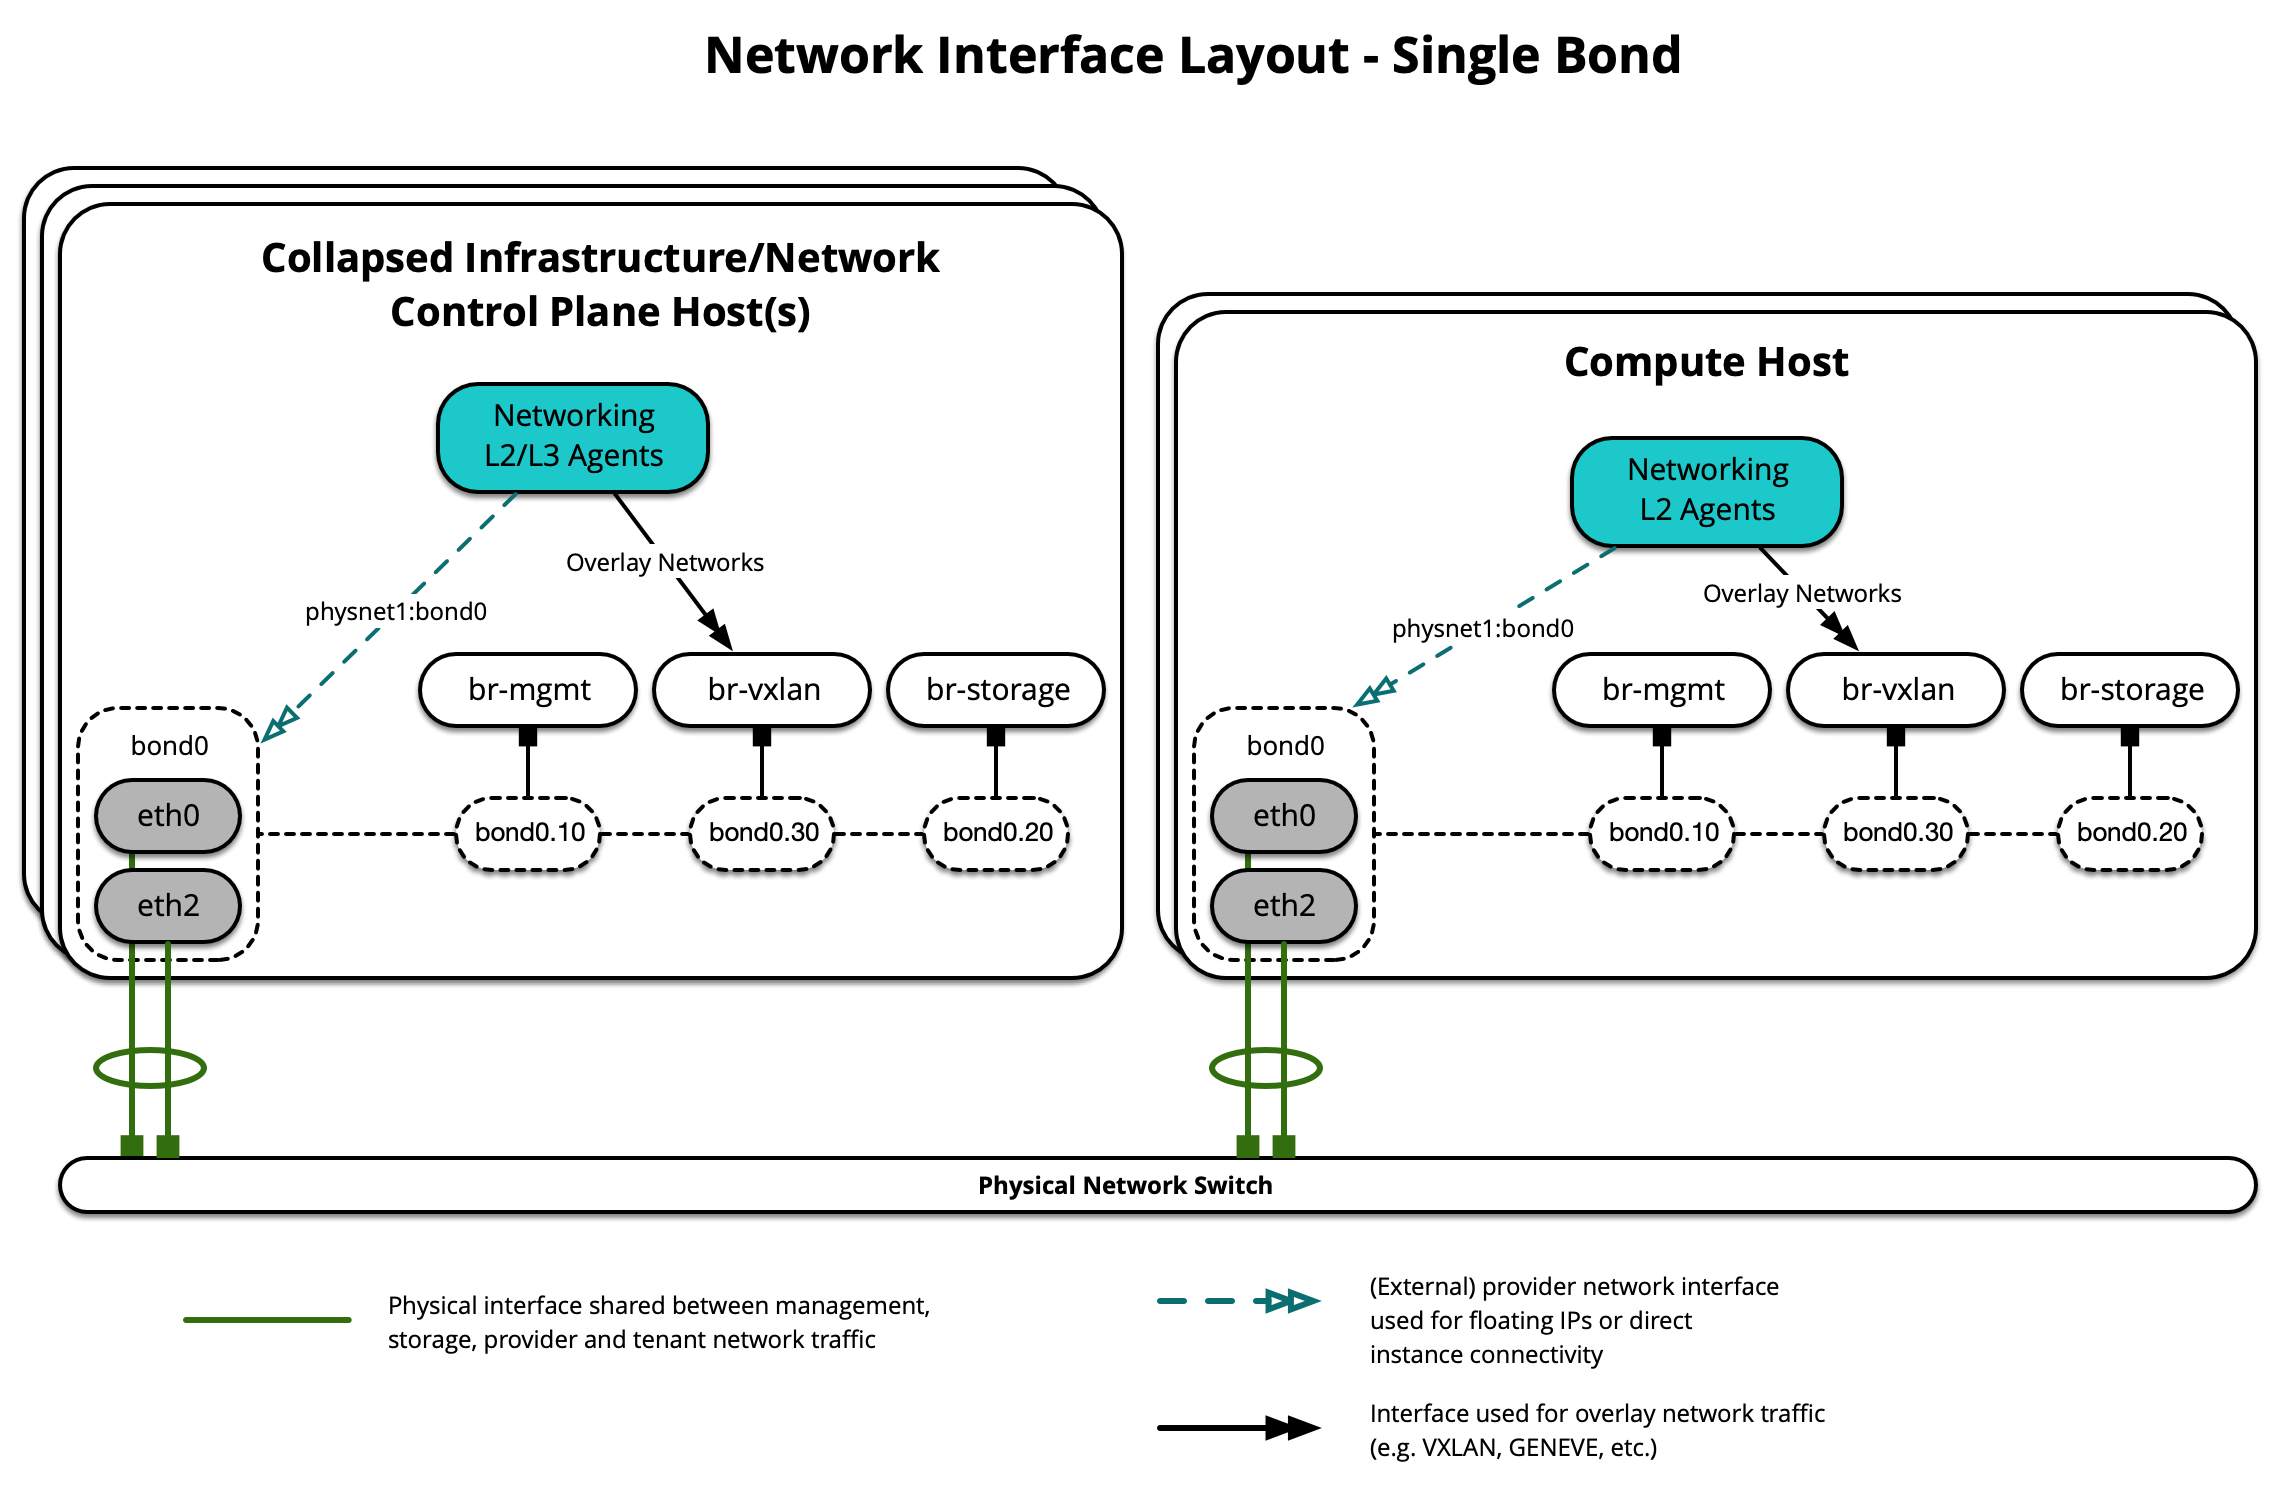 Network Interface Layout - Single Bond